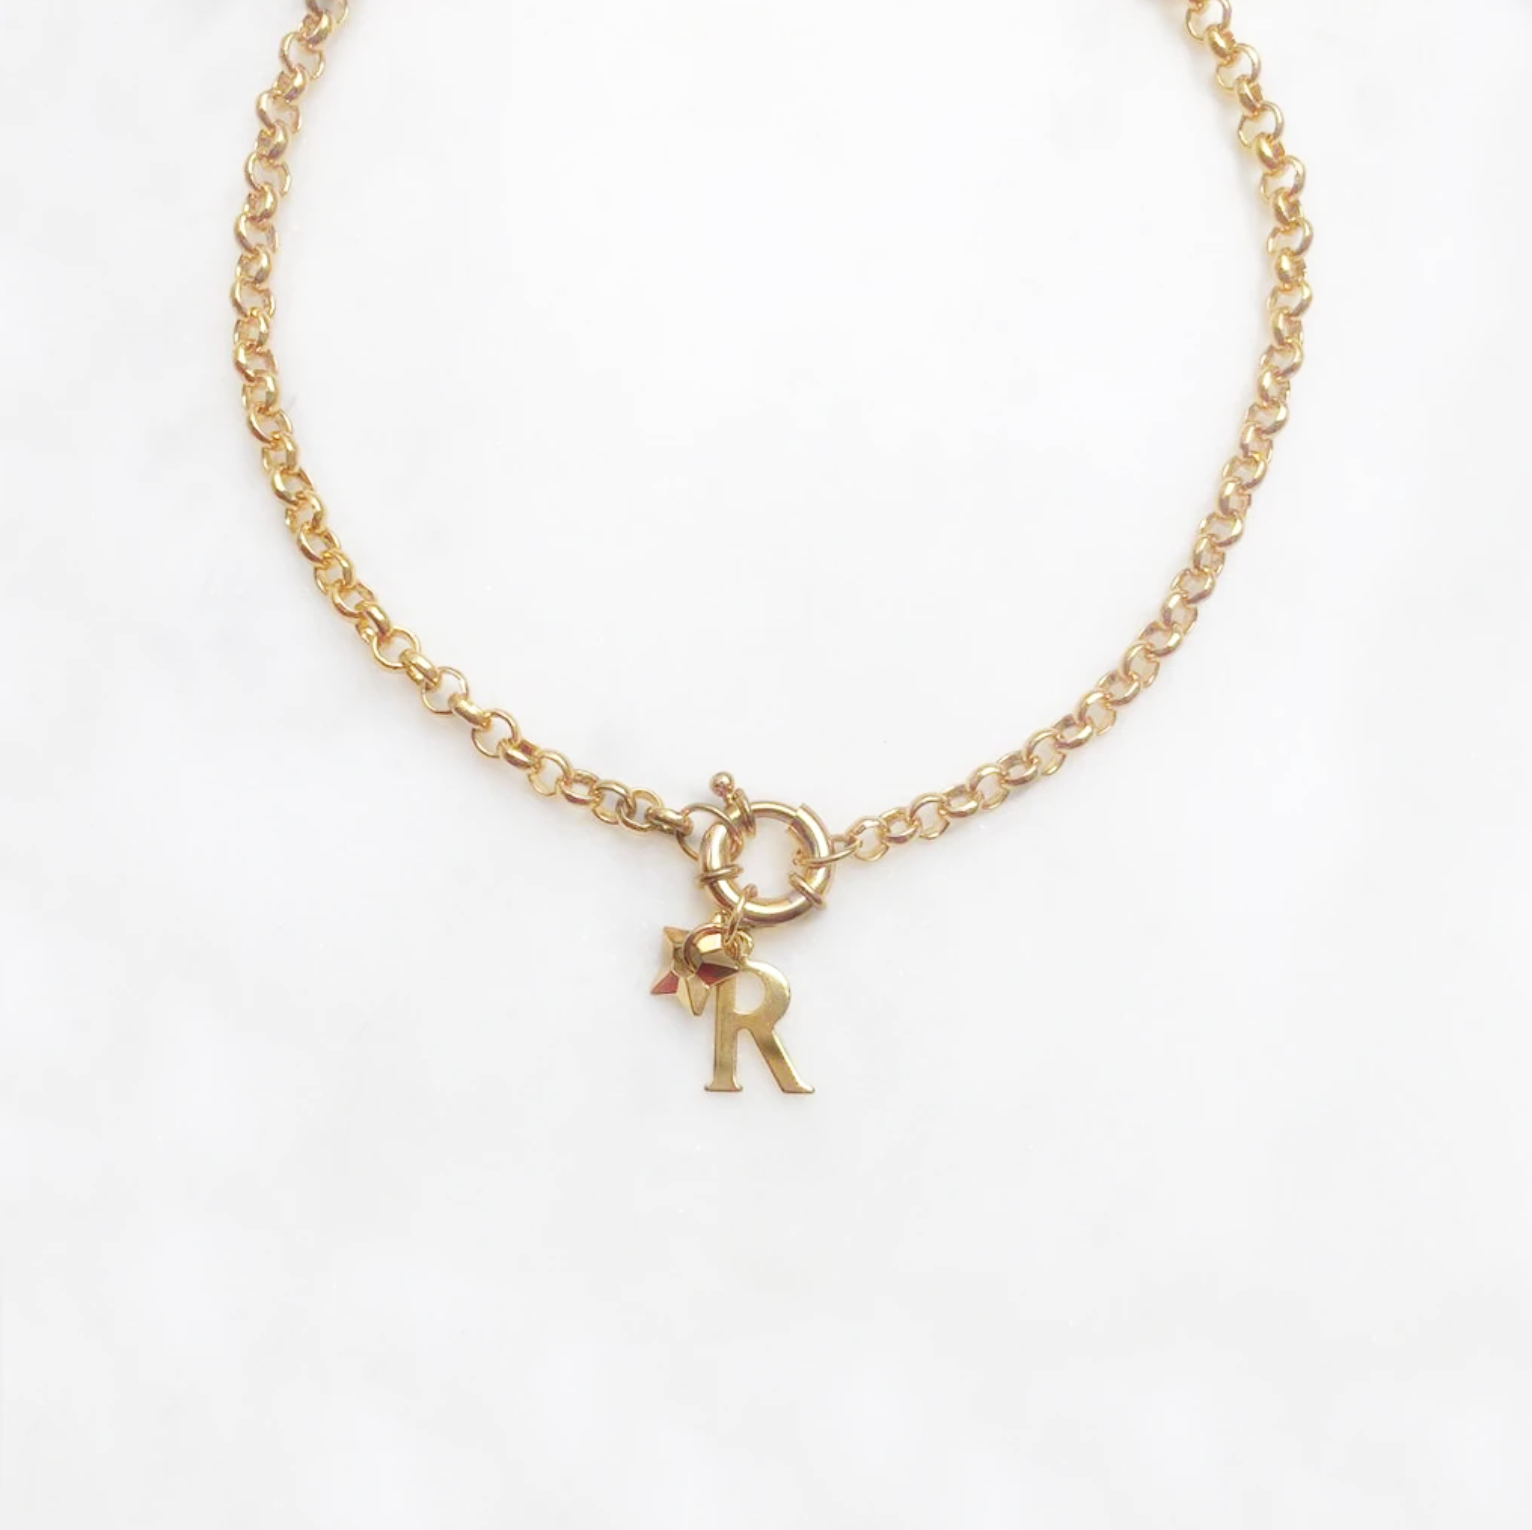 necklace - star and initial